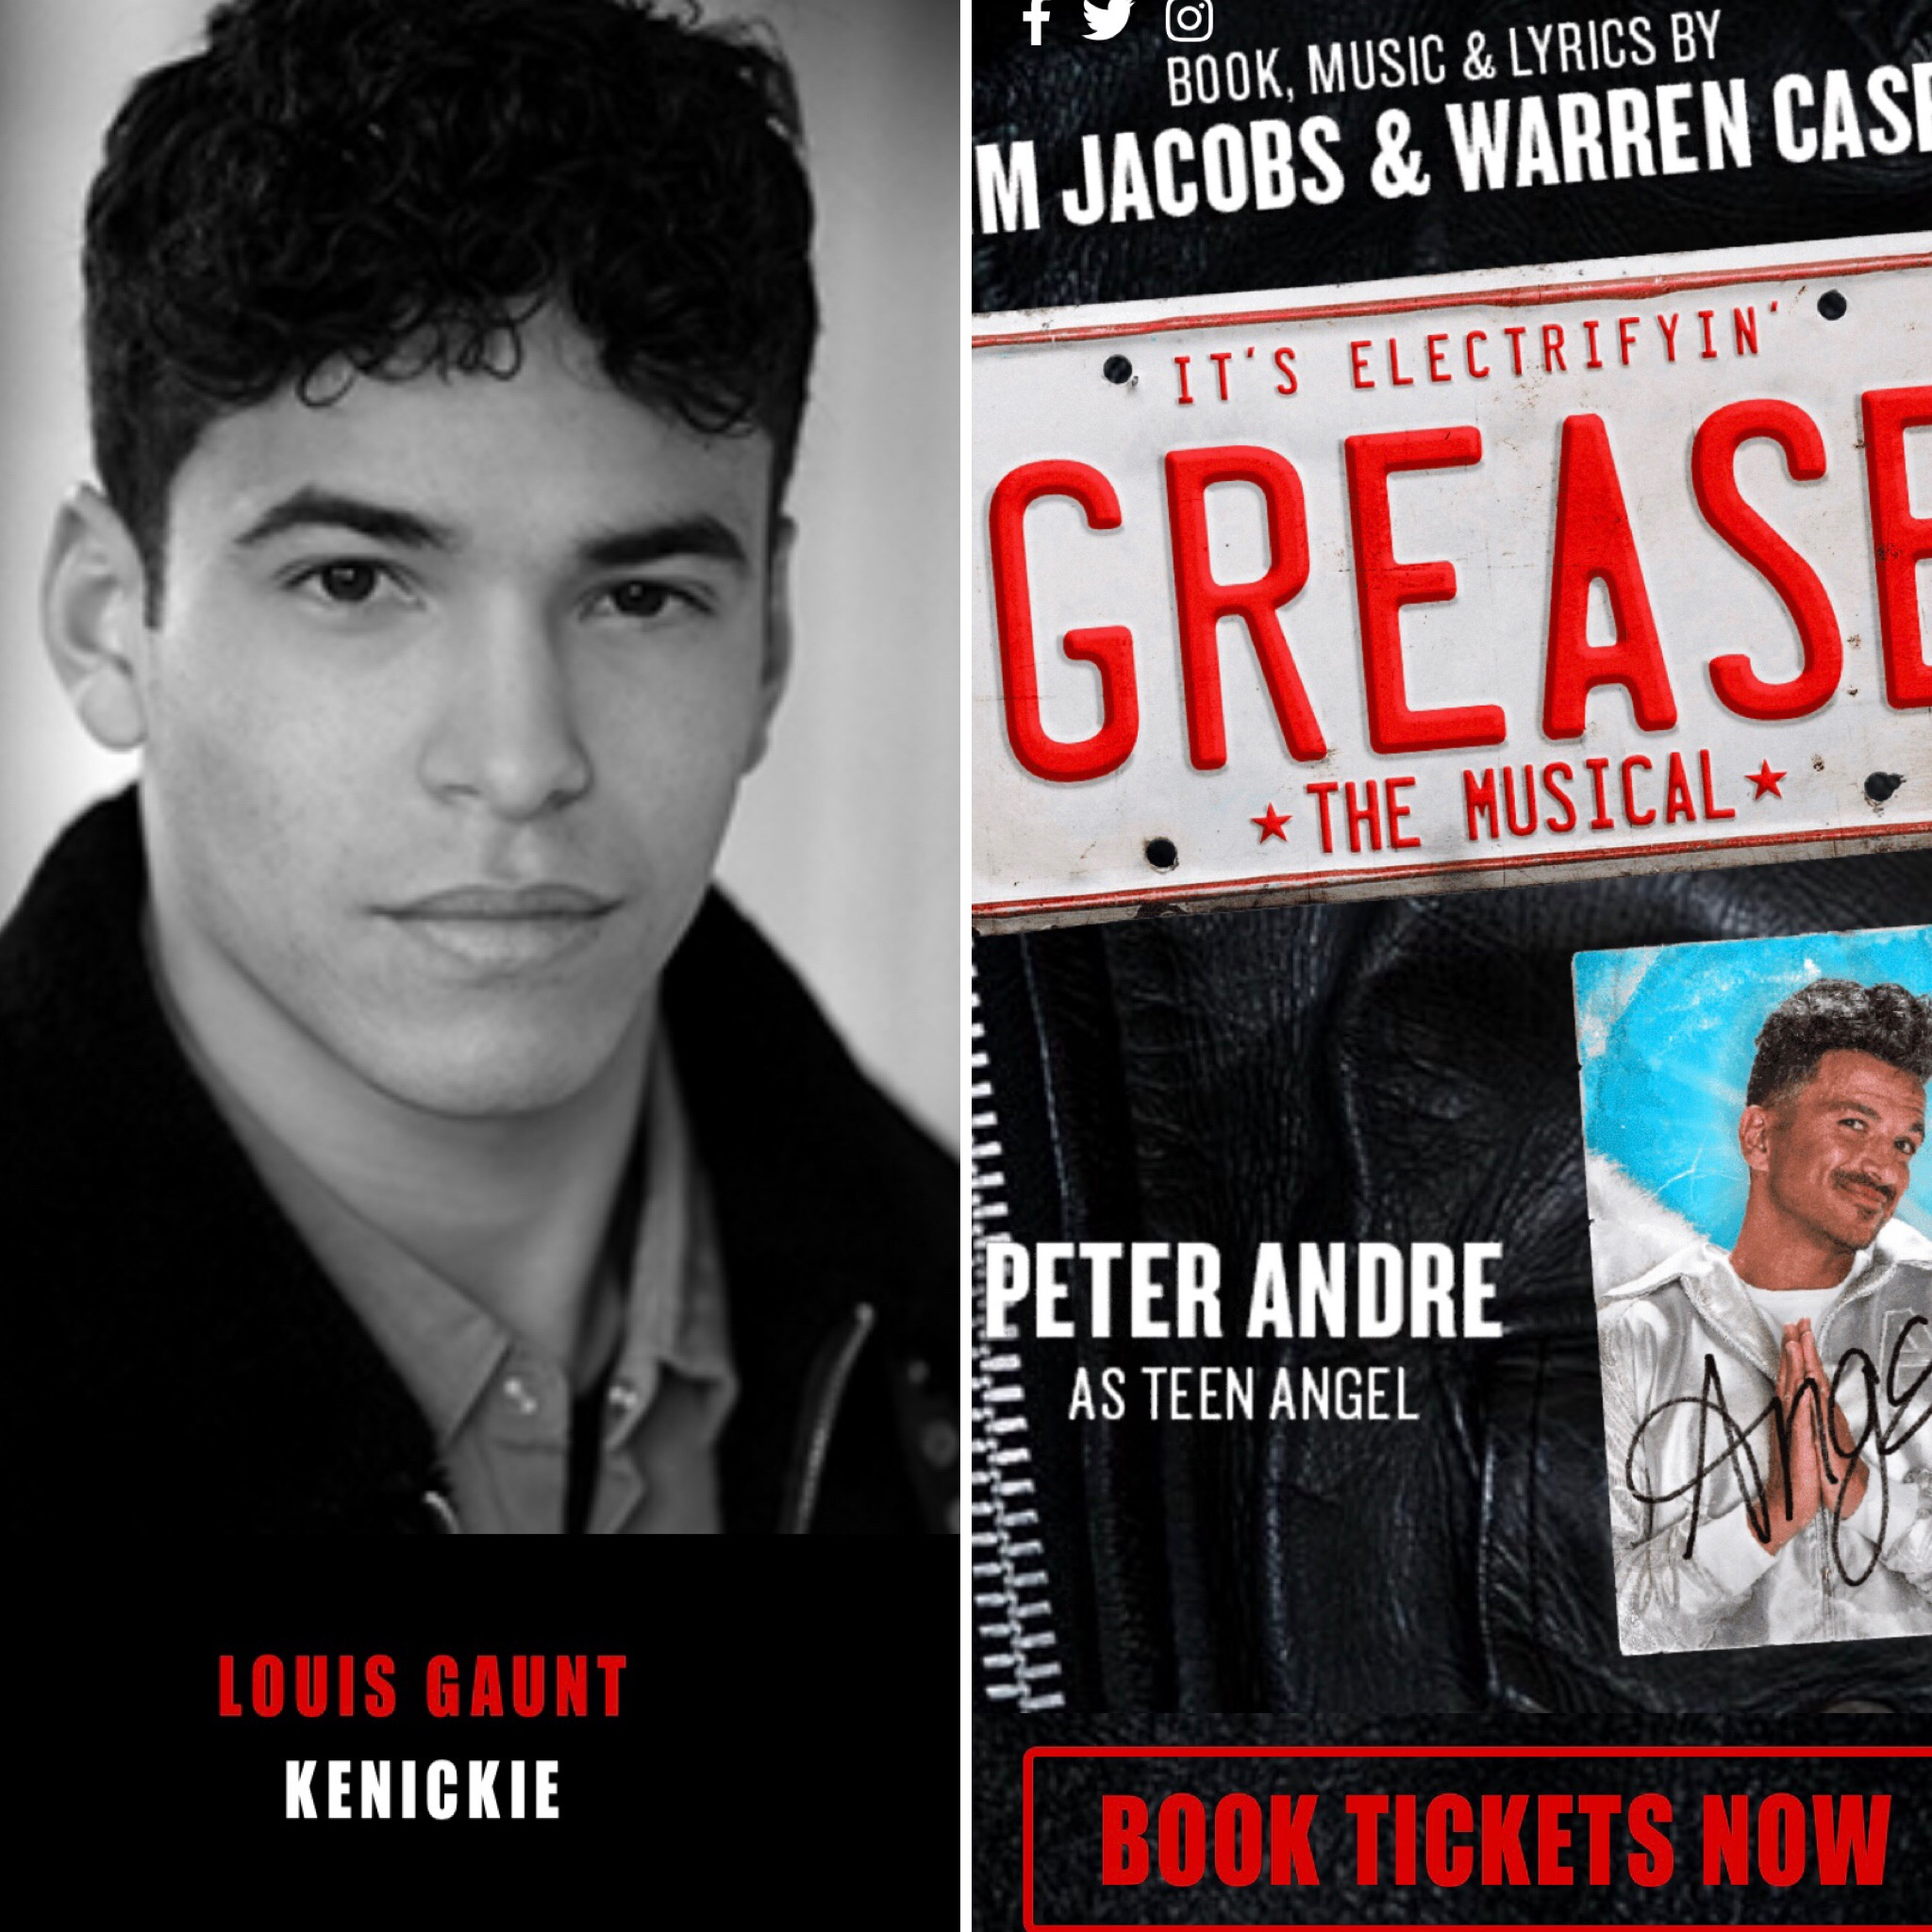 Ex-student and Ruddington home grown talent Louis Gaunt is currently touring the UK in Grease the Musical (choreographed by Arlene Phillips) playing the role of Kenickie alongside Peter Andre. A fantastic achievement for a local boy.